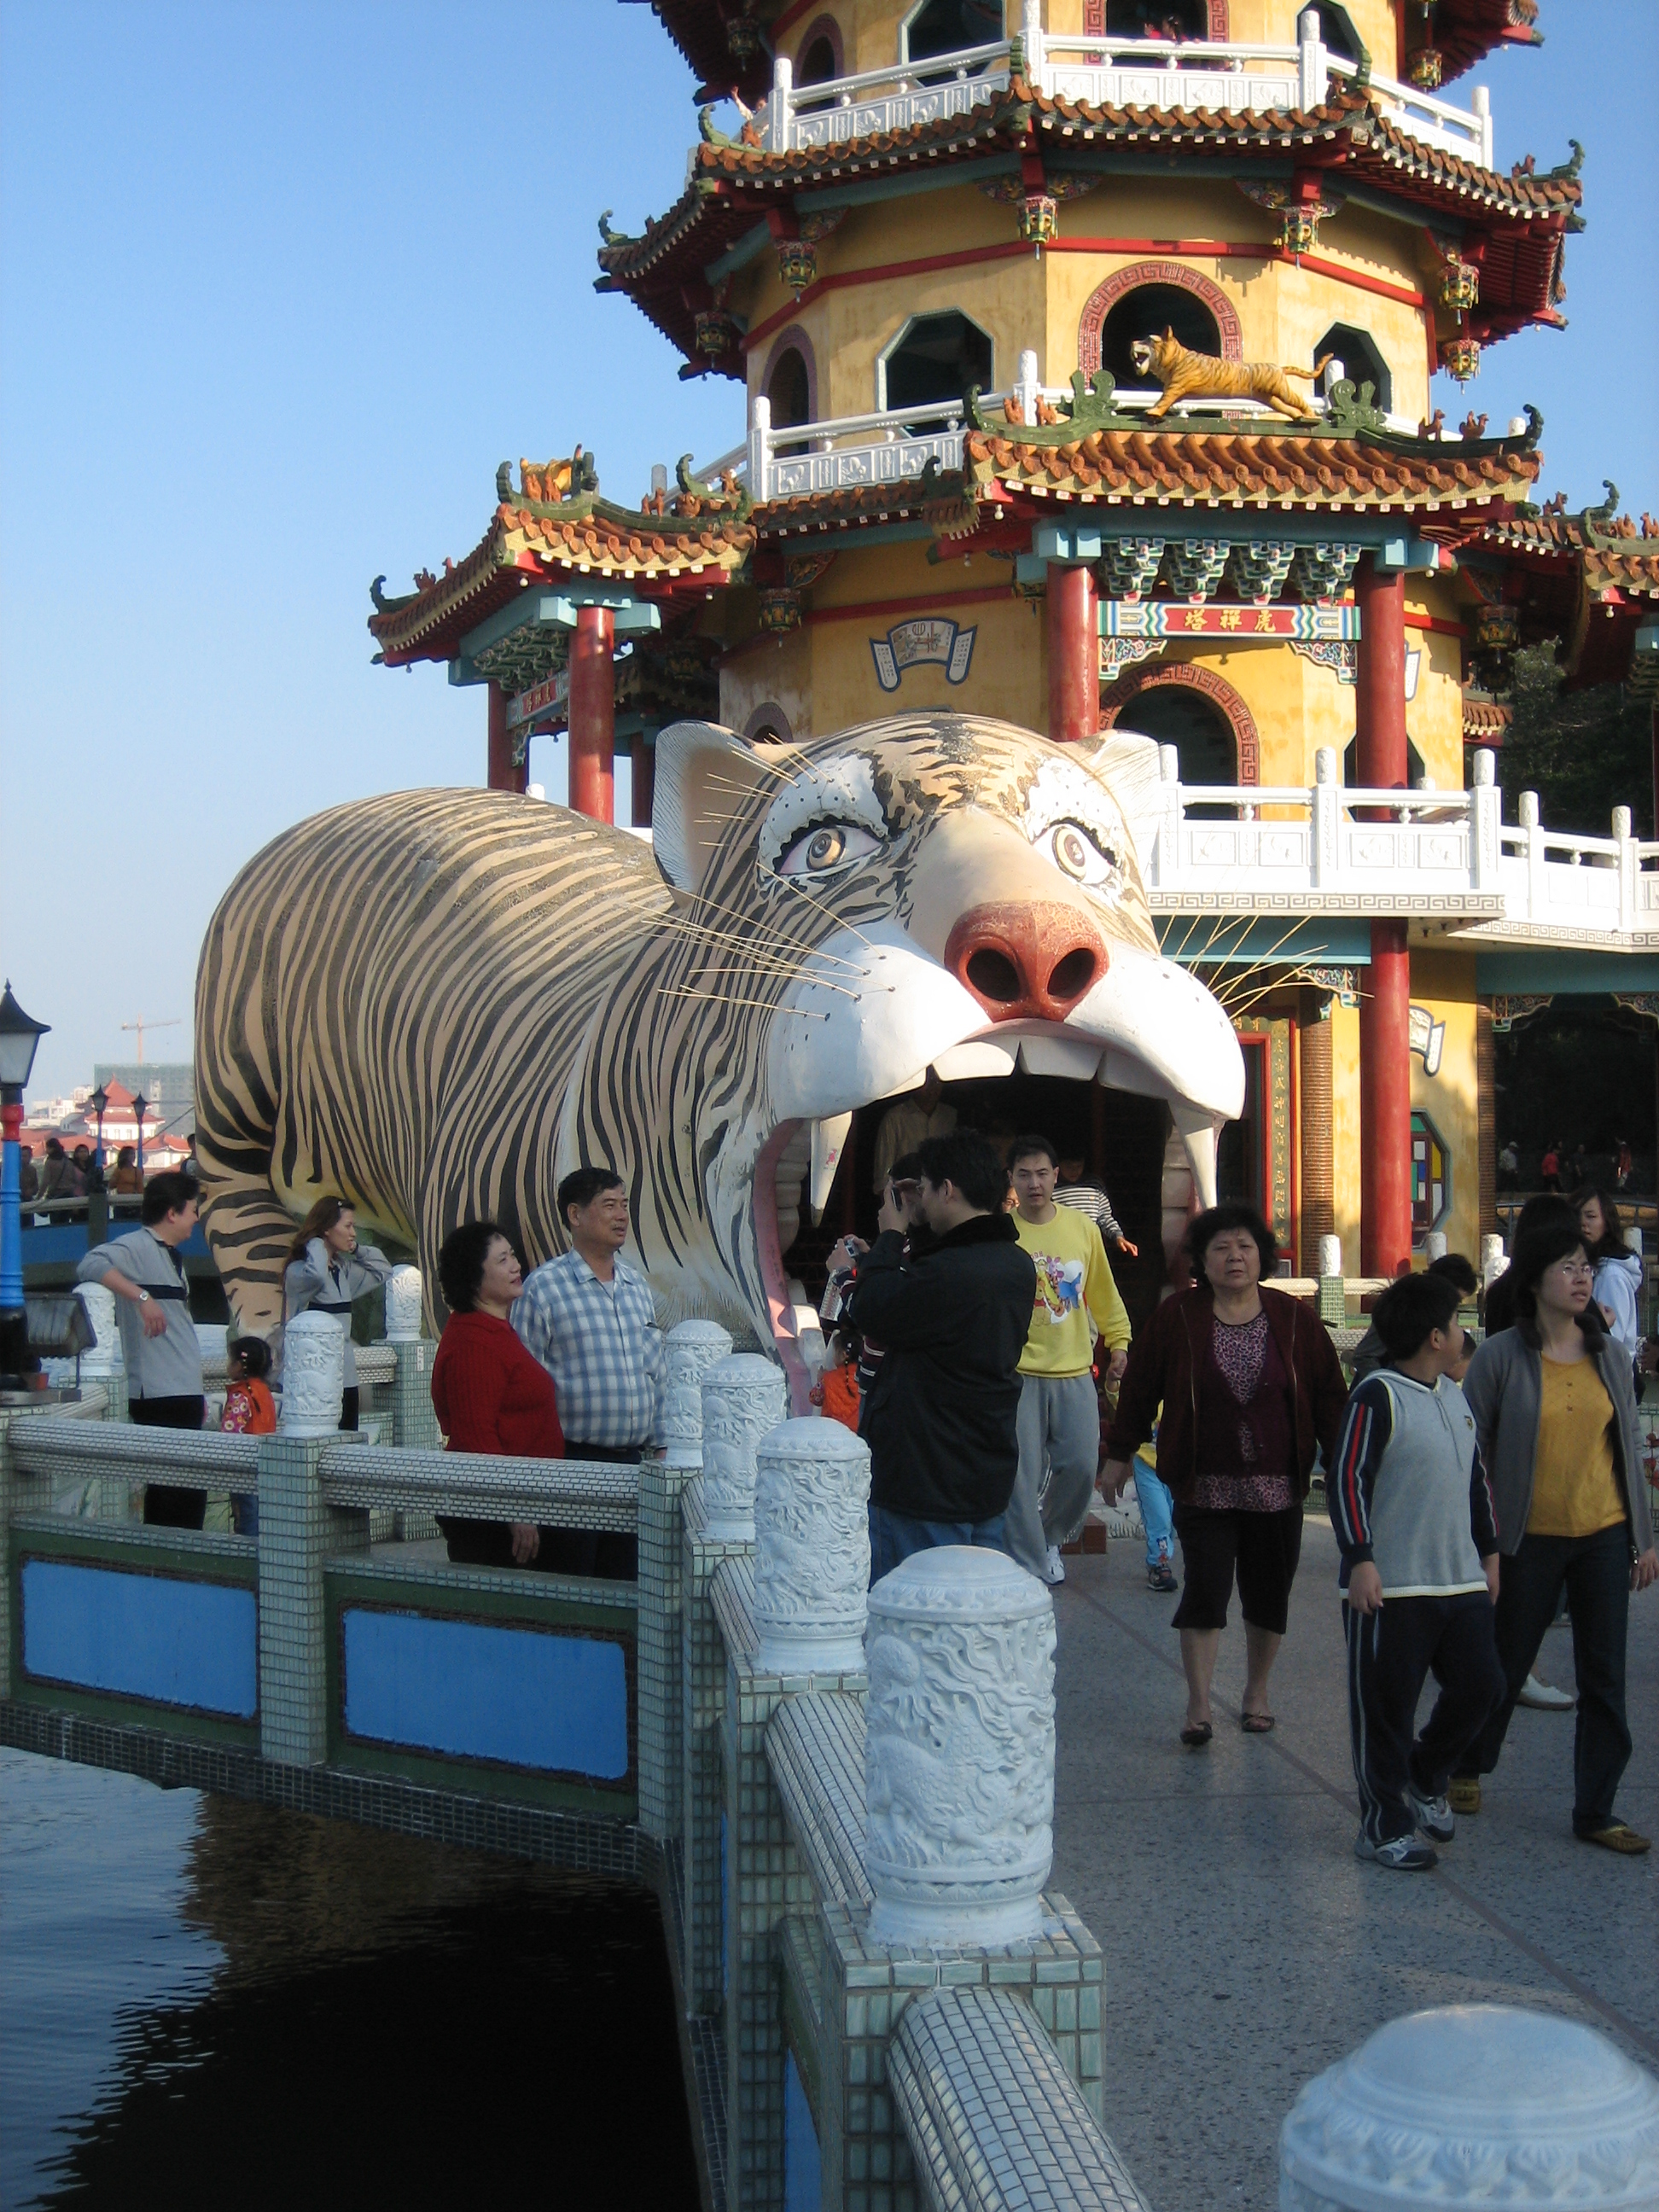 Tiger tower in Kaohsiung